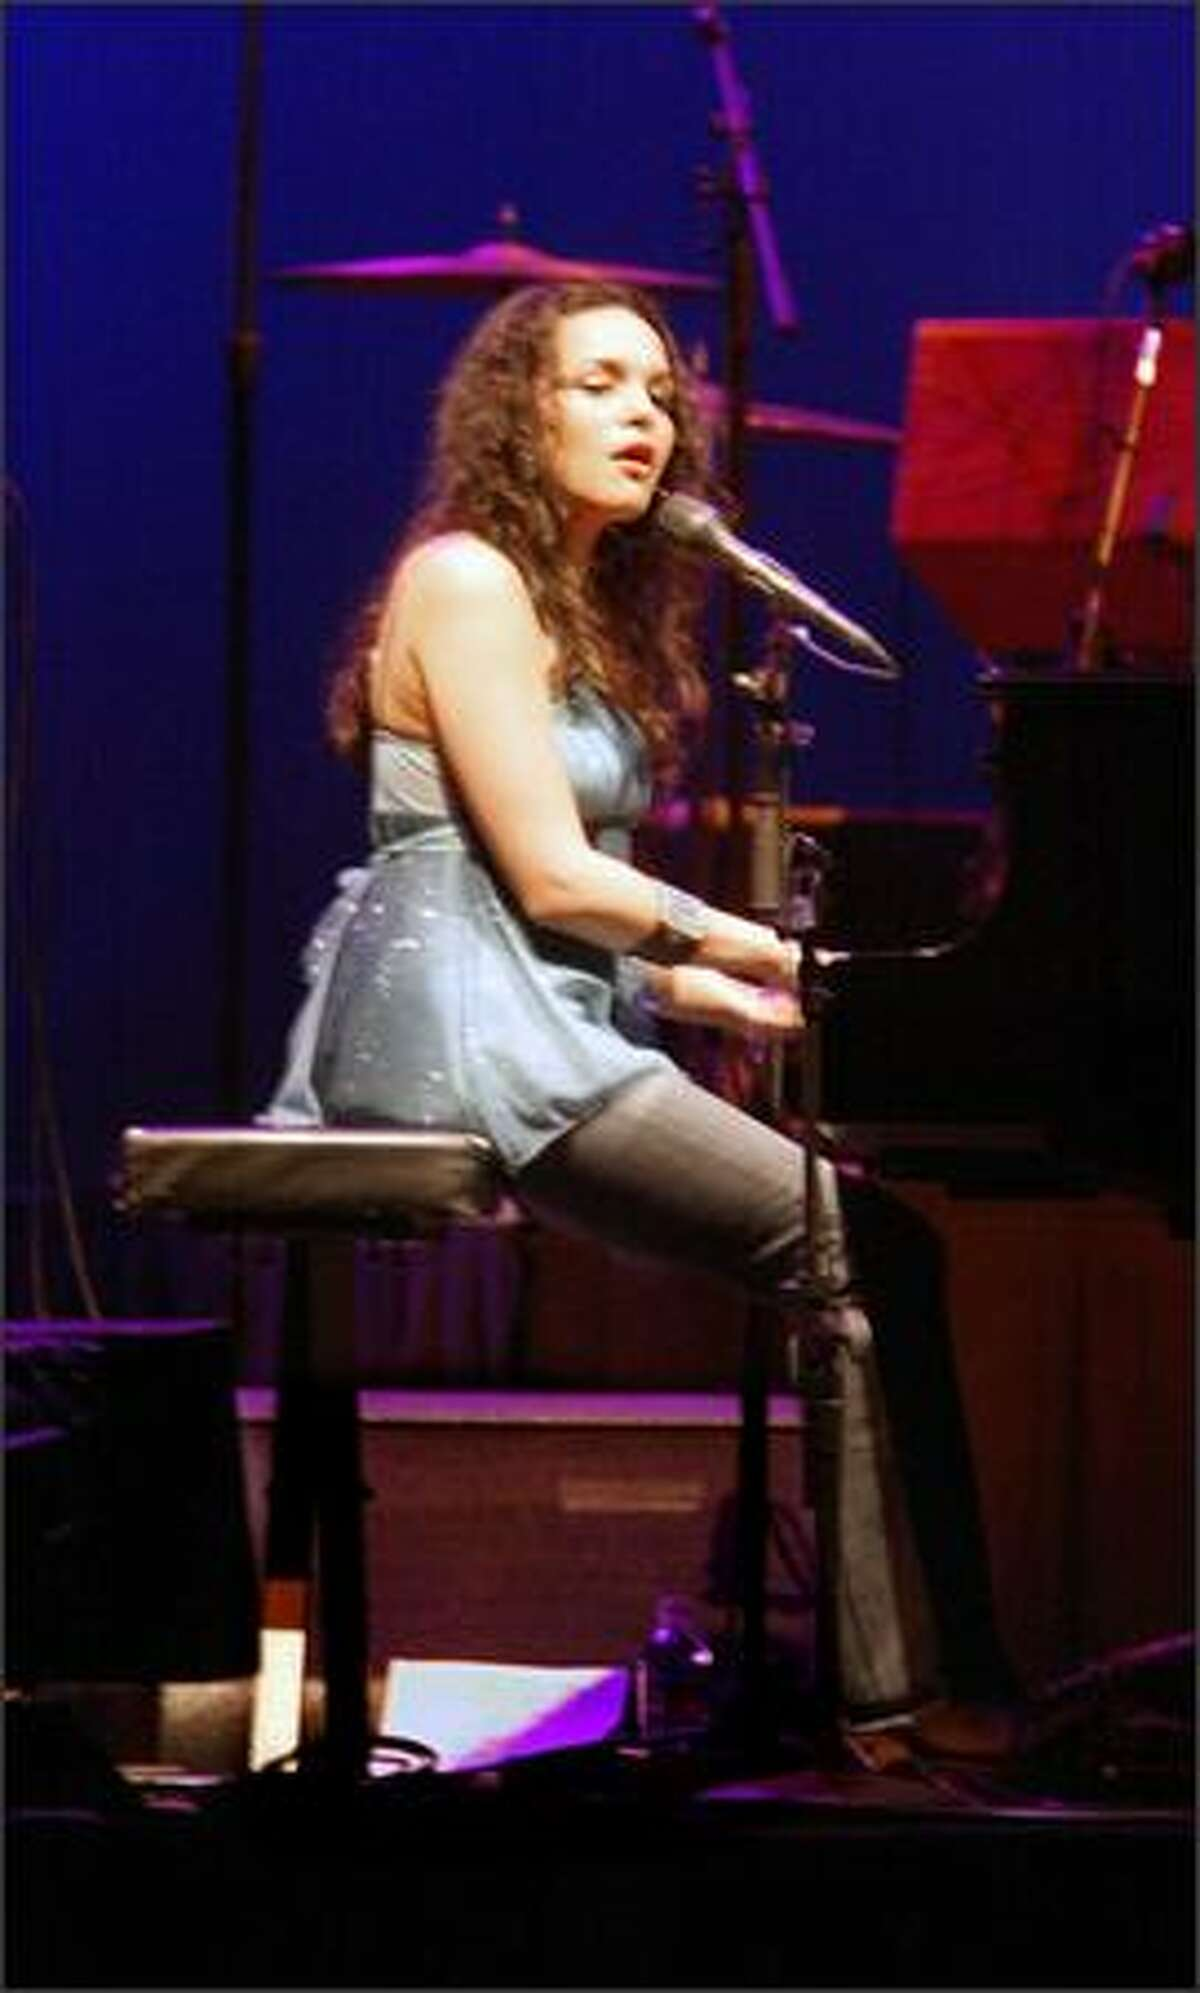 Multi-Grammy Award-winning recording artist Norah Jones performs at KeyArena Tuesday night.